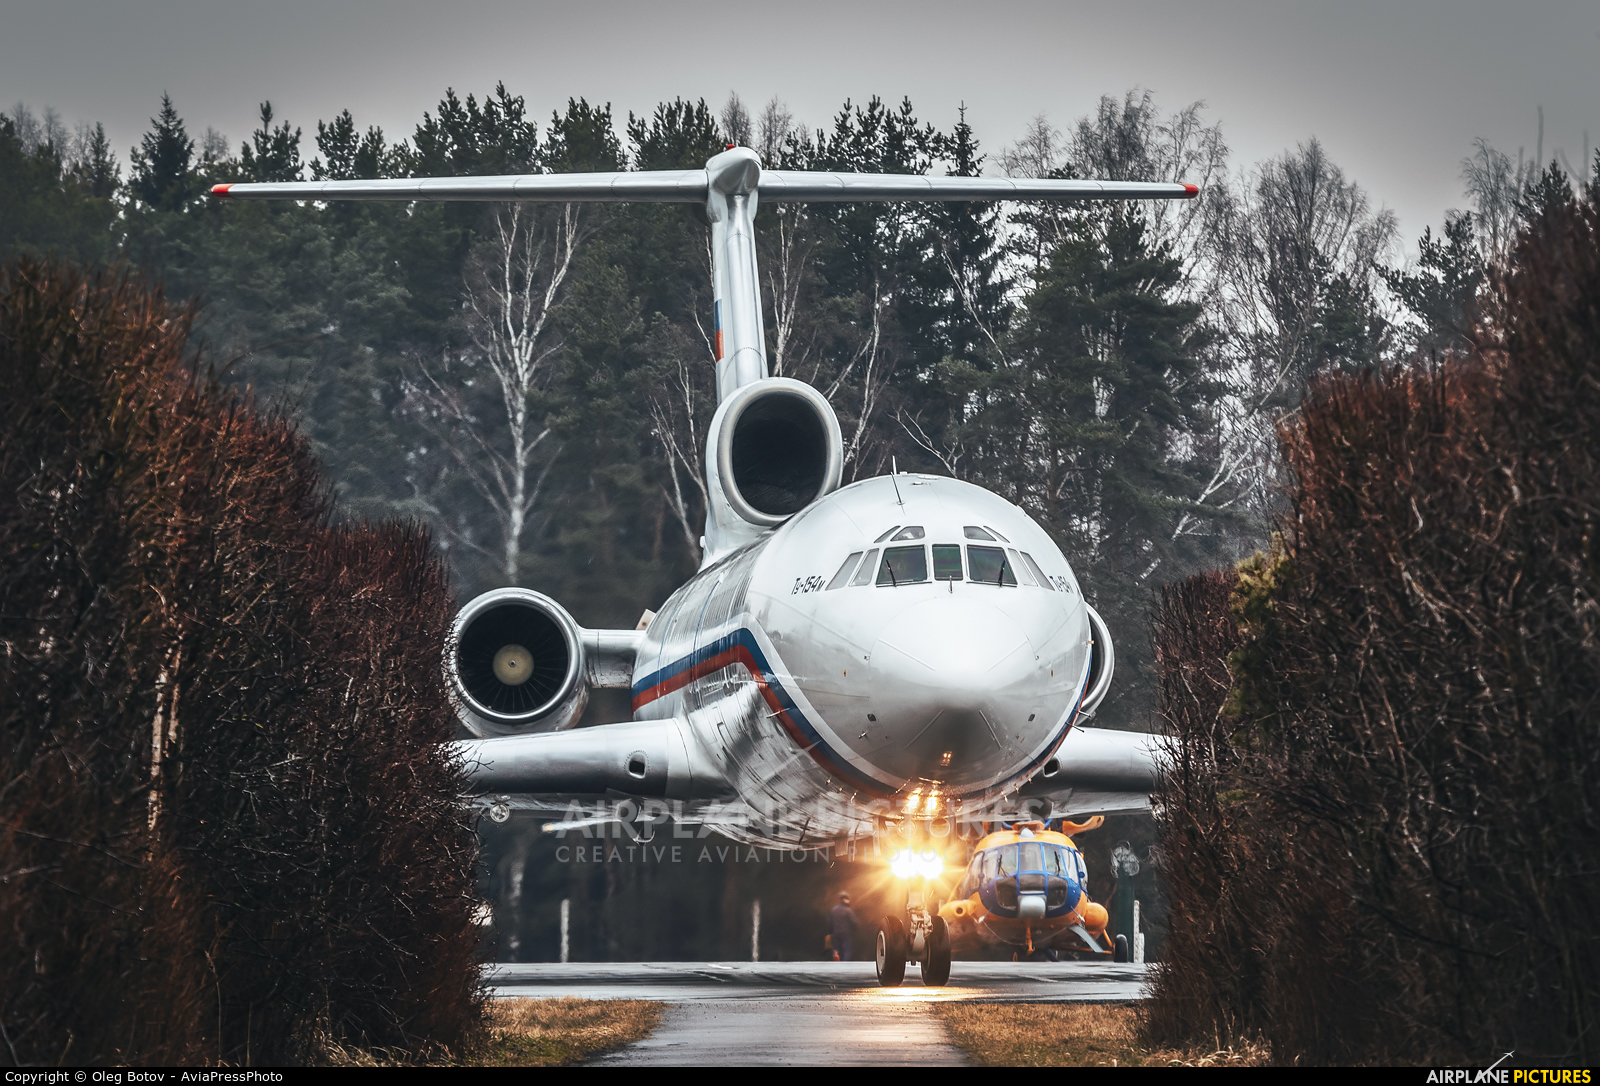 Russia - Air Force RA-85155 aircraft at Undisclosed Location